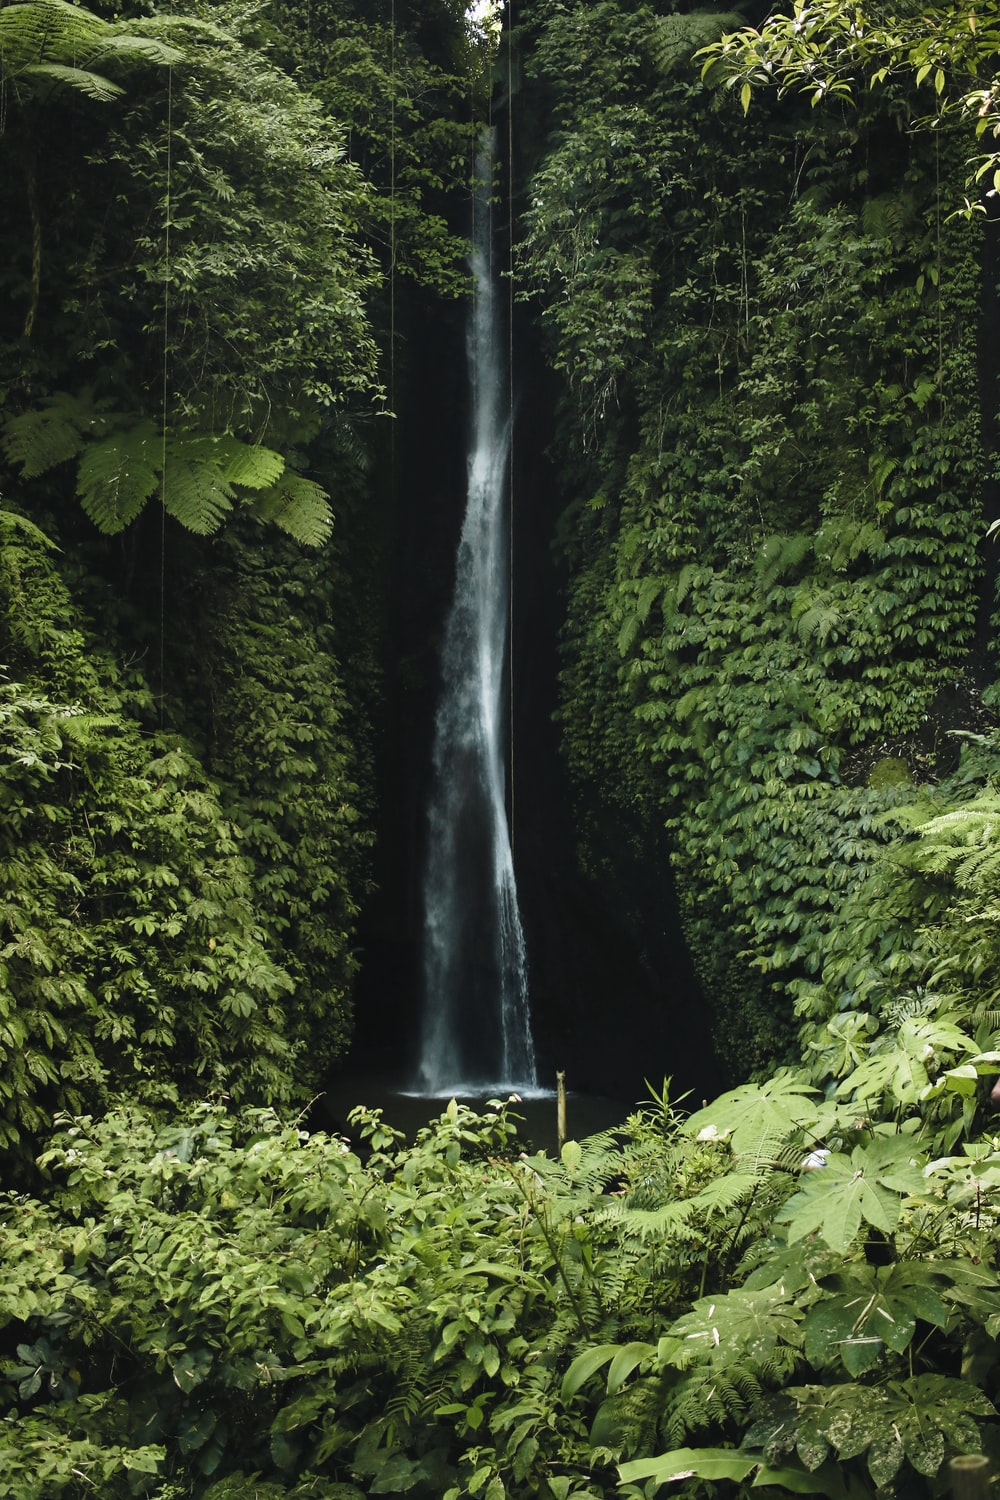 clear waterfalls surrounded by trees